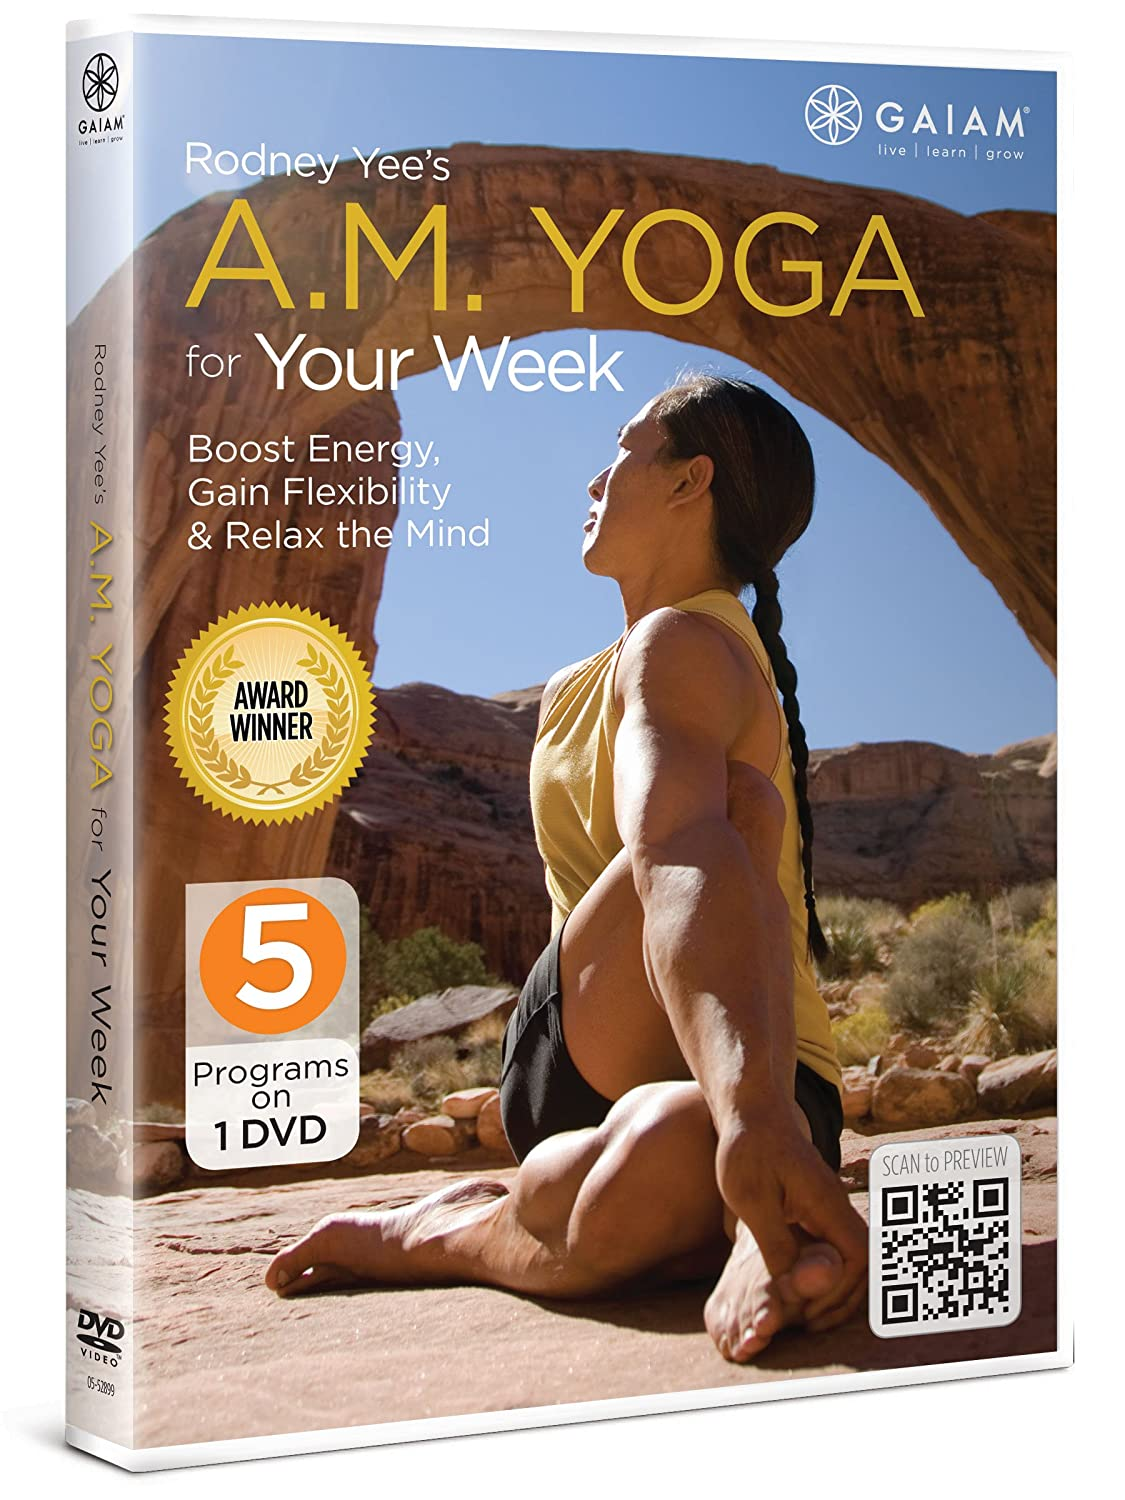 Amazon com: A M  Yoga for Your Week: Rodney Yee, Gaiam